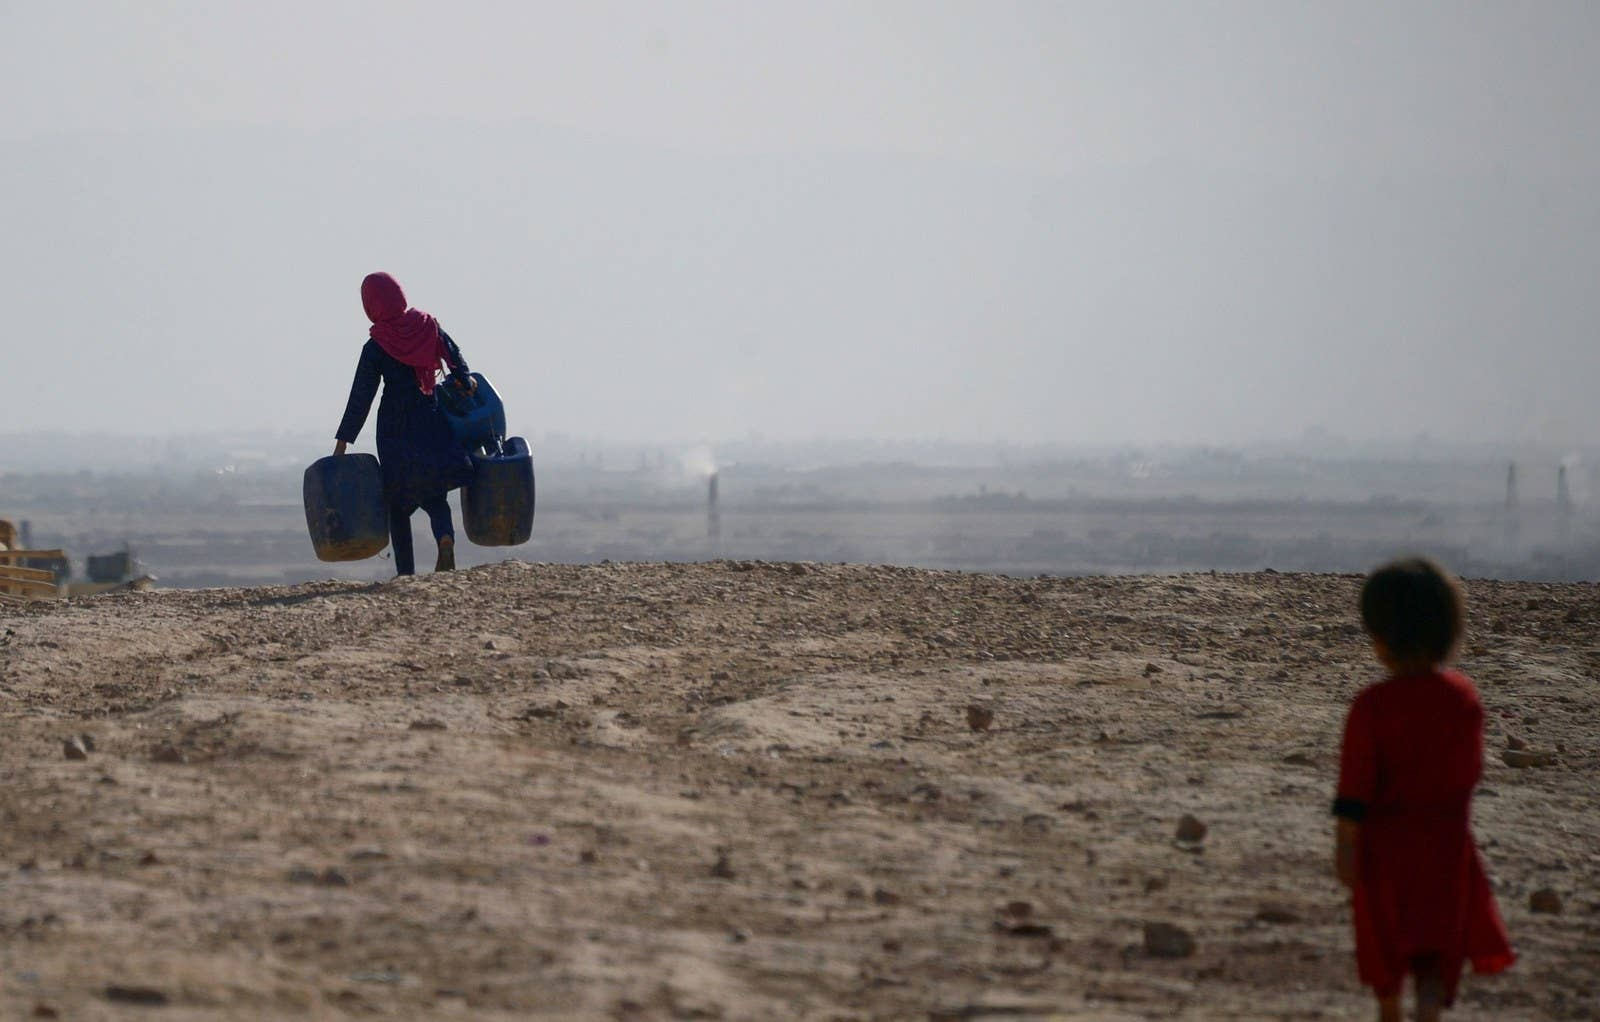 An Afghan girl carries empty containers to collect water as a younger child looks on in Sakhi village, Afghanistan, on July 19.